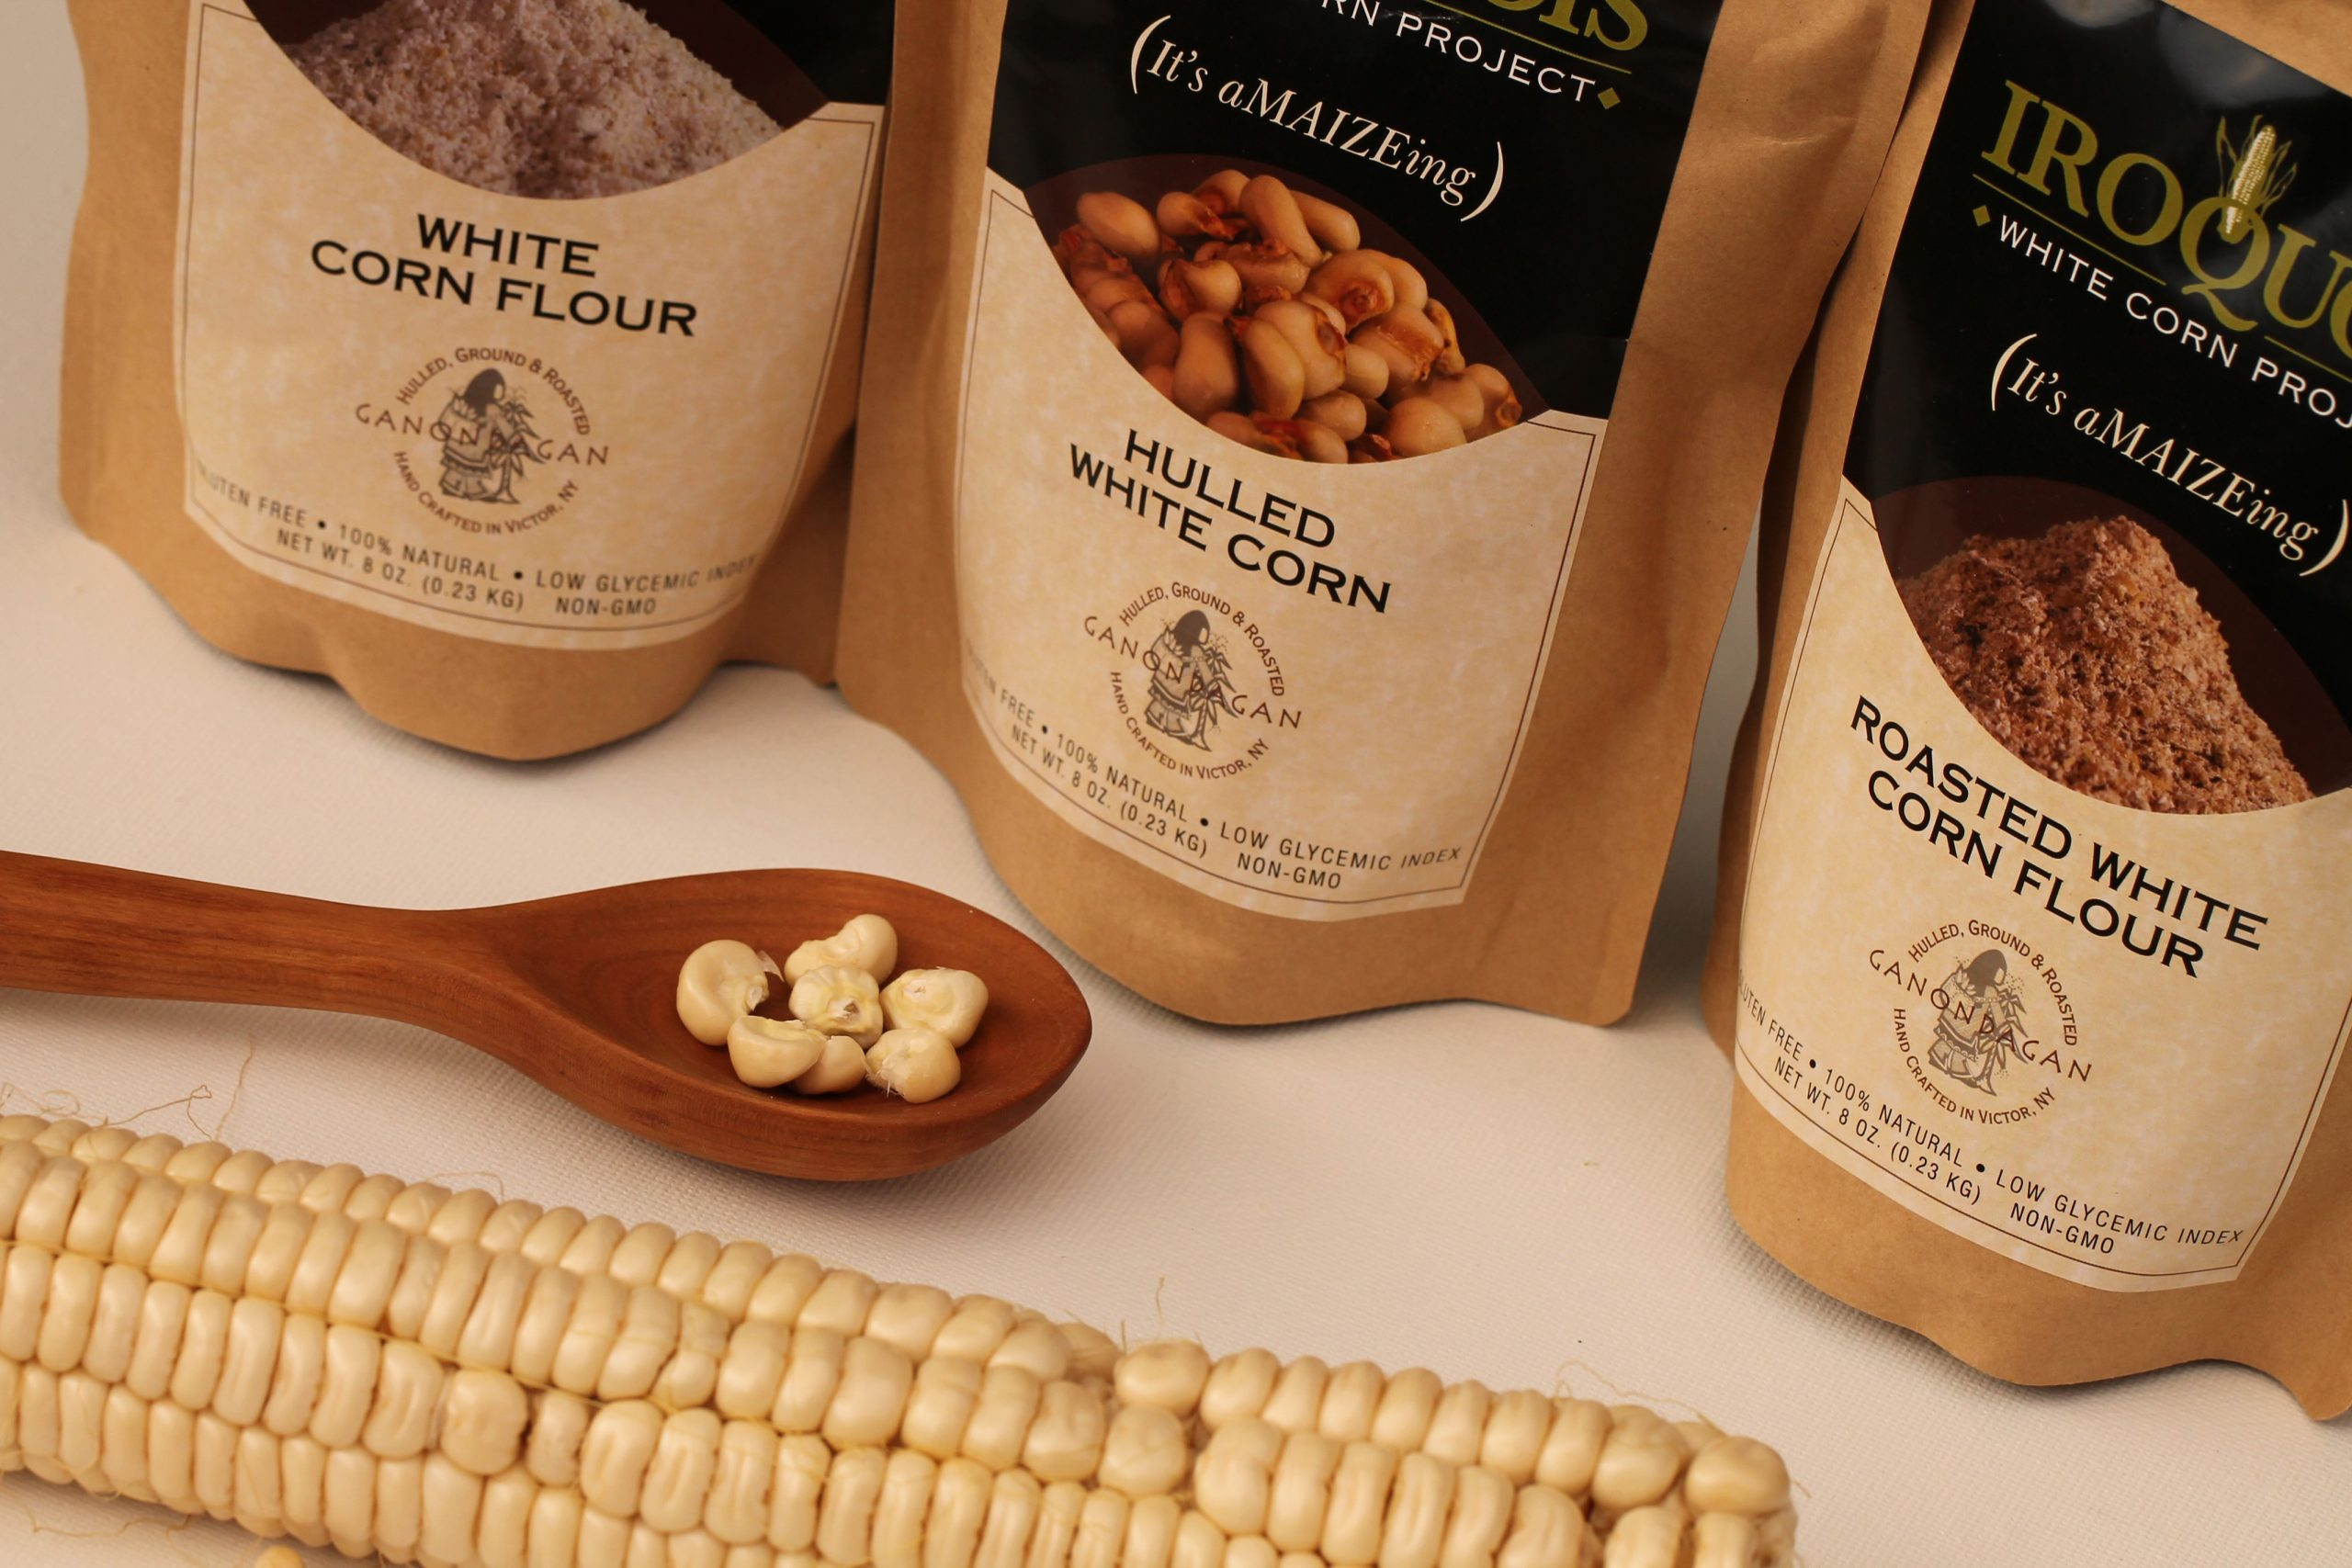 Iroquois white corn flour products